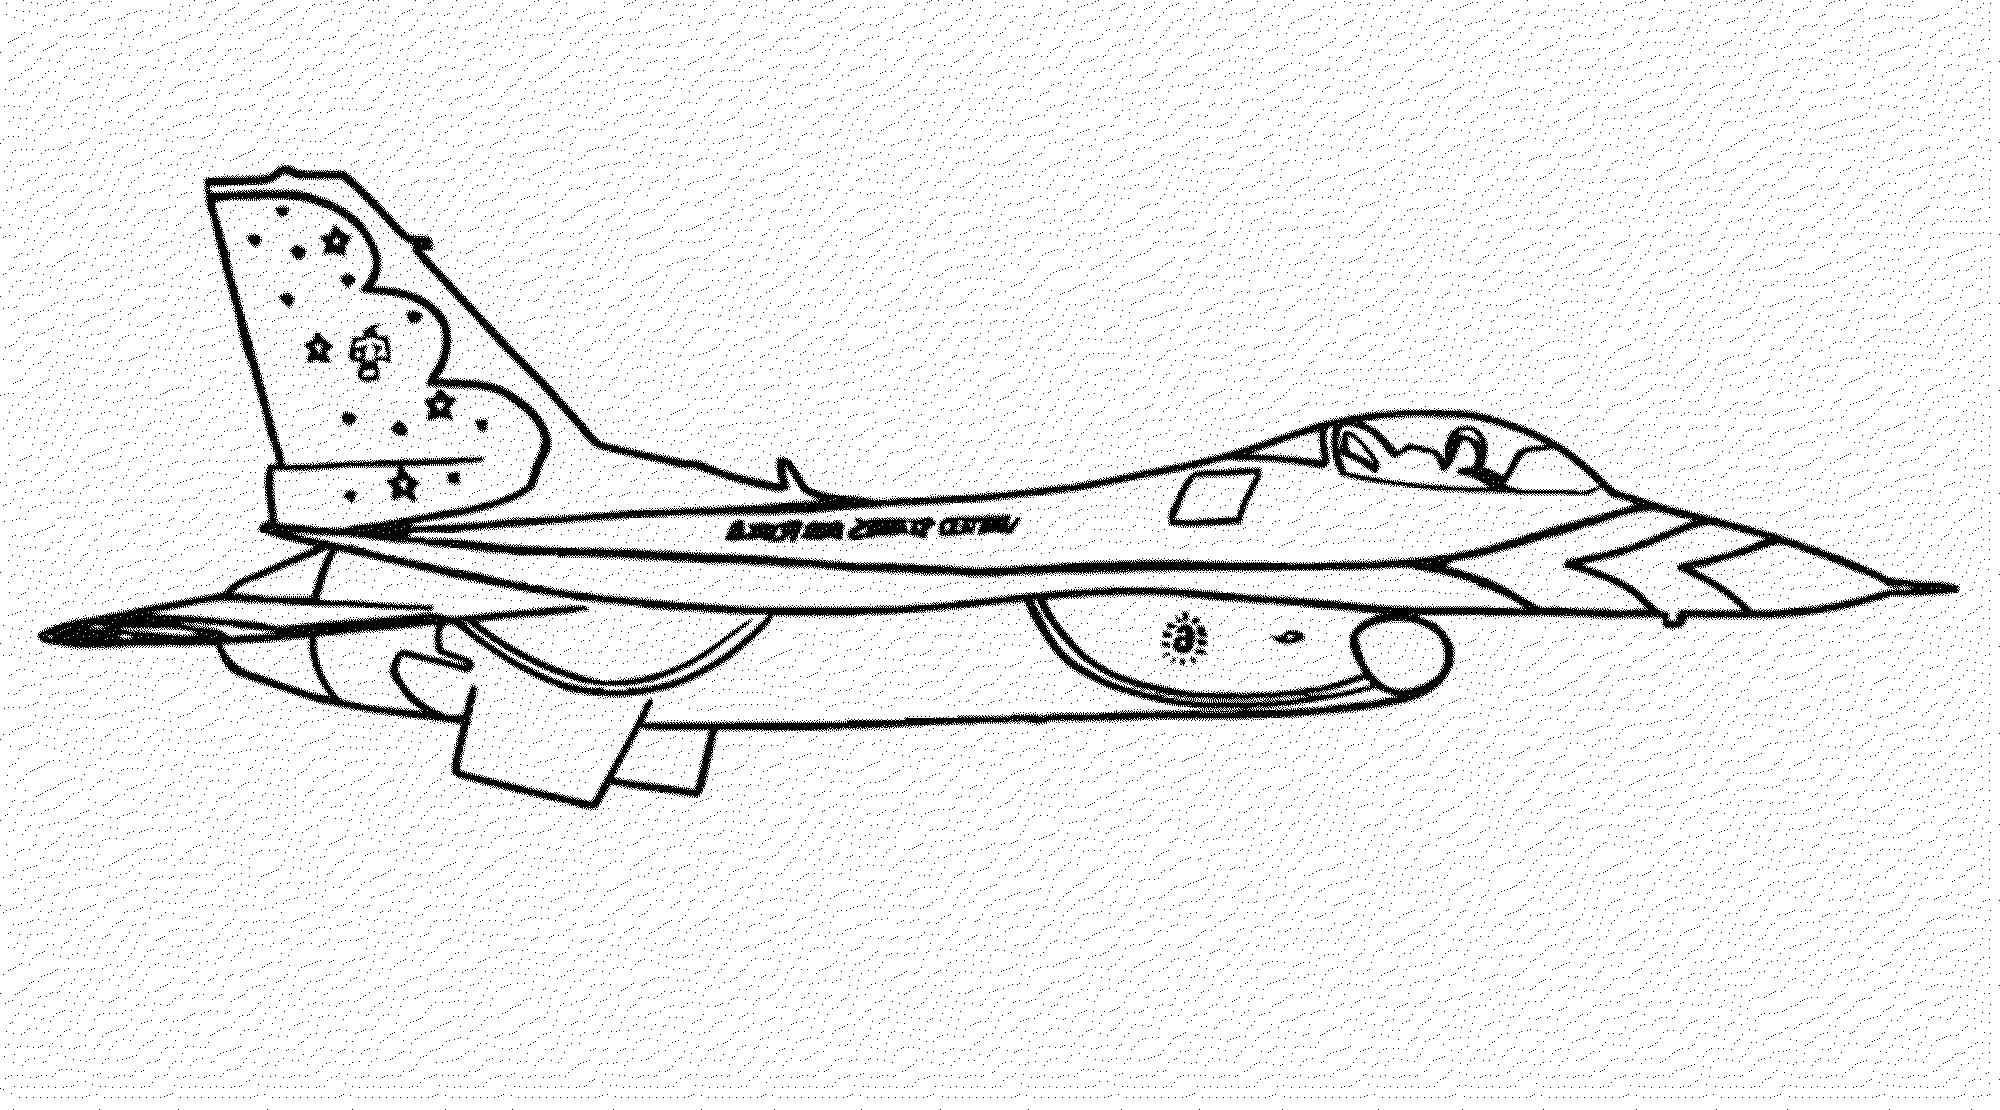 military planes coloring pages | army-airplane-coloring-pages | | BestAppsForKids.com